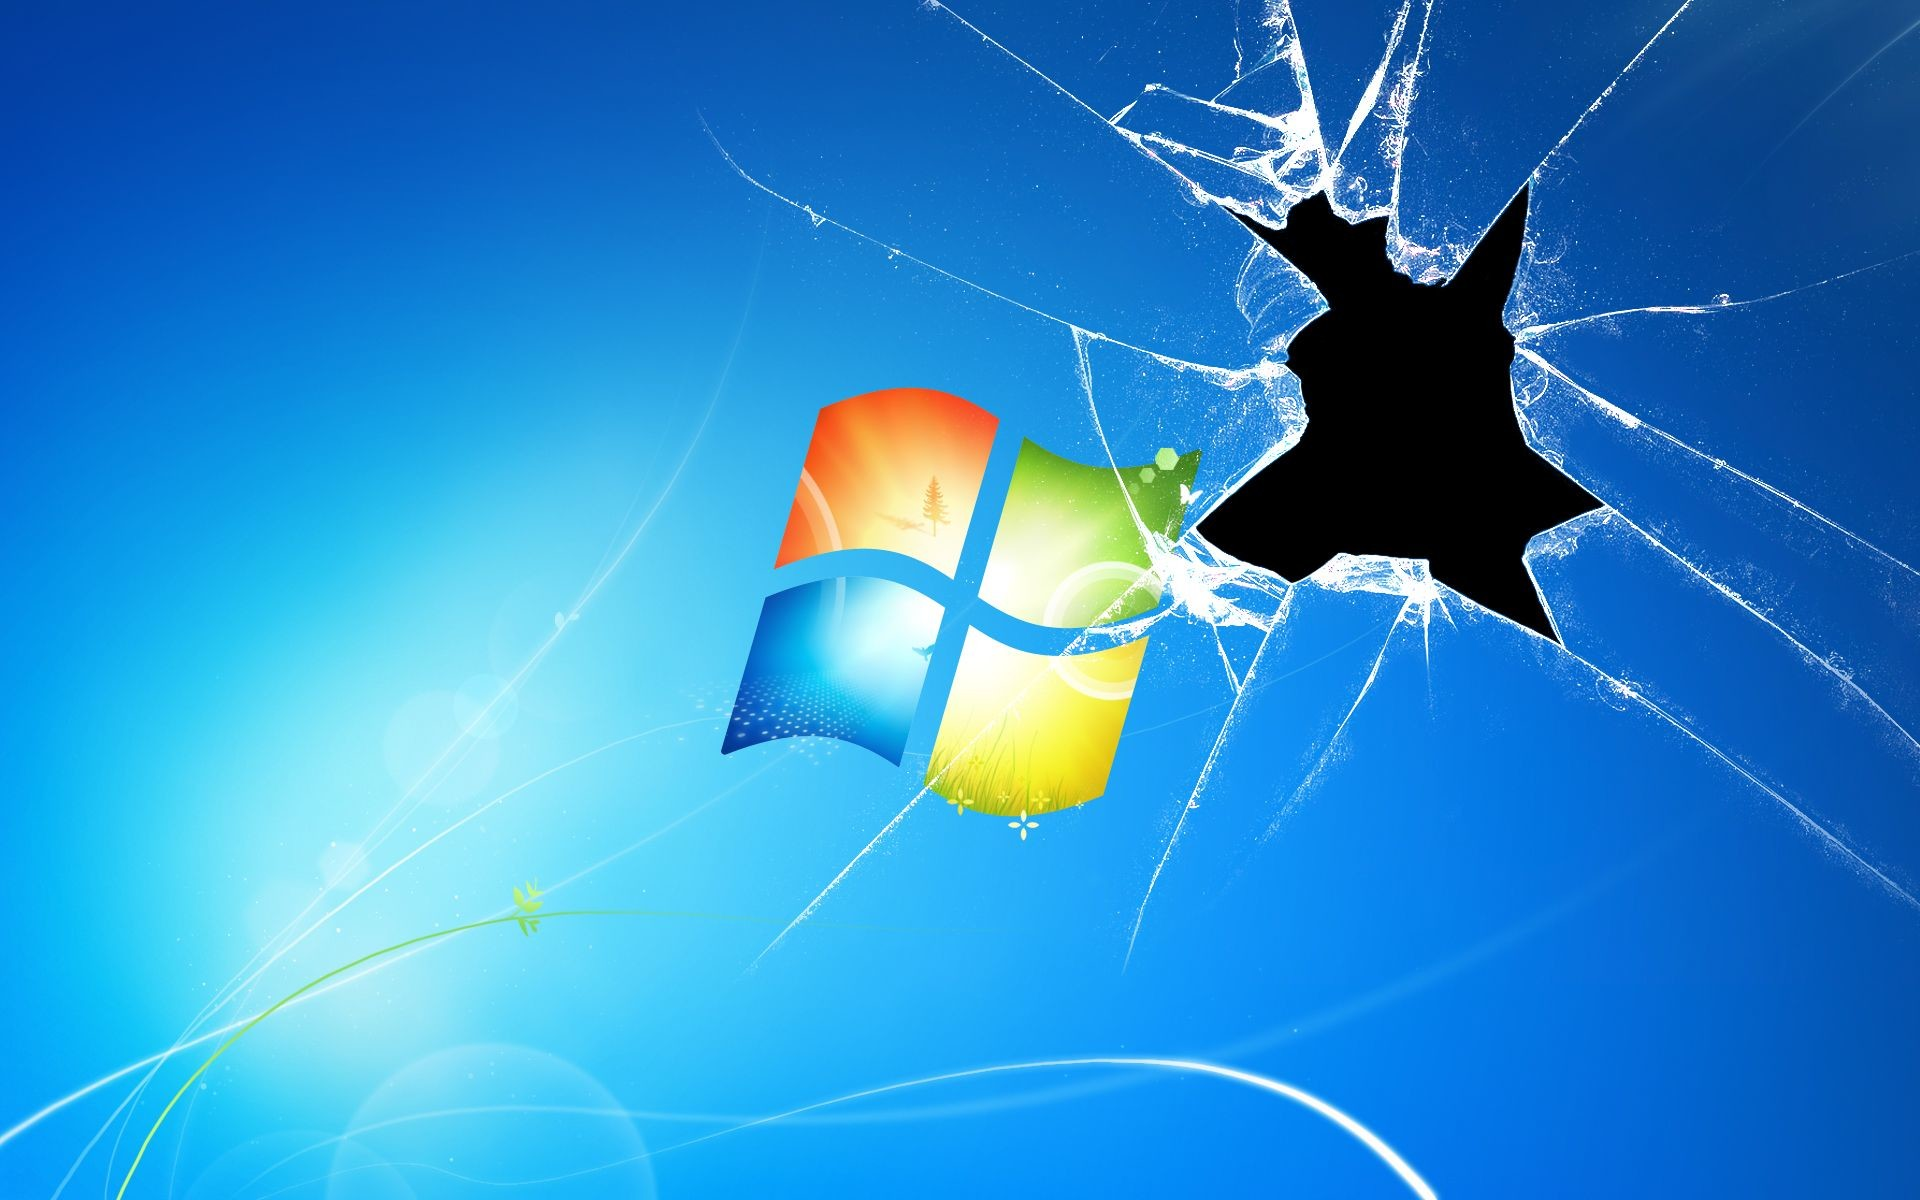 Windows 10 Funny Wallpaper 70 Images